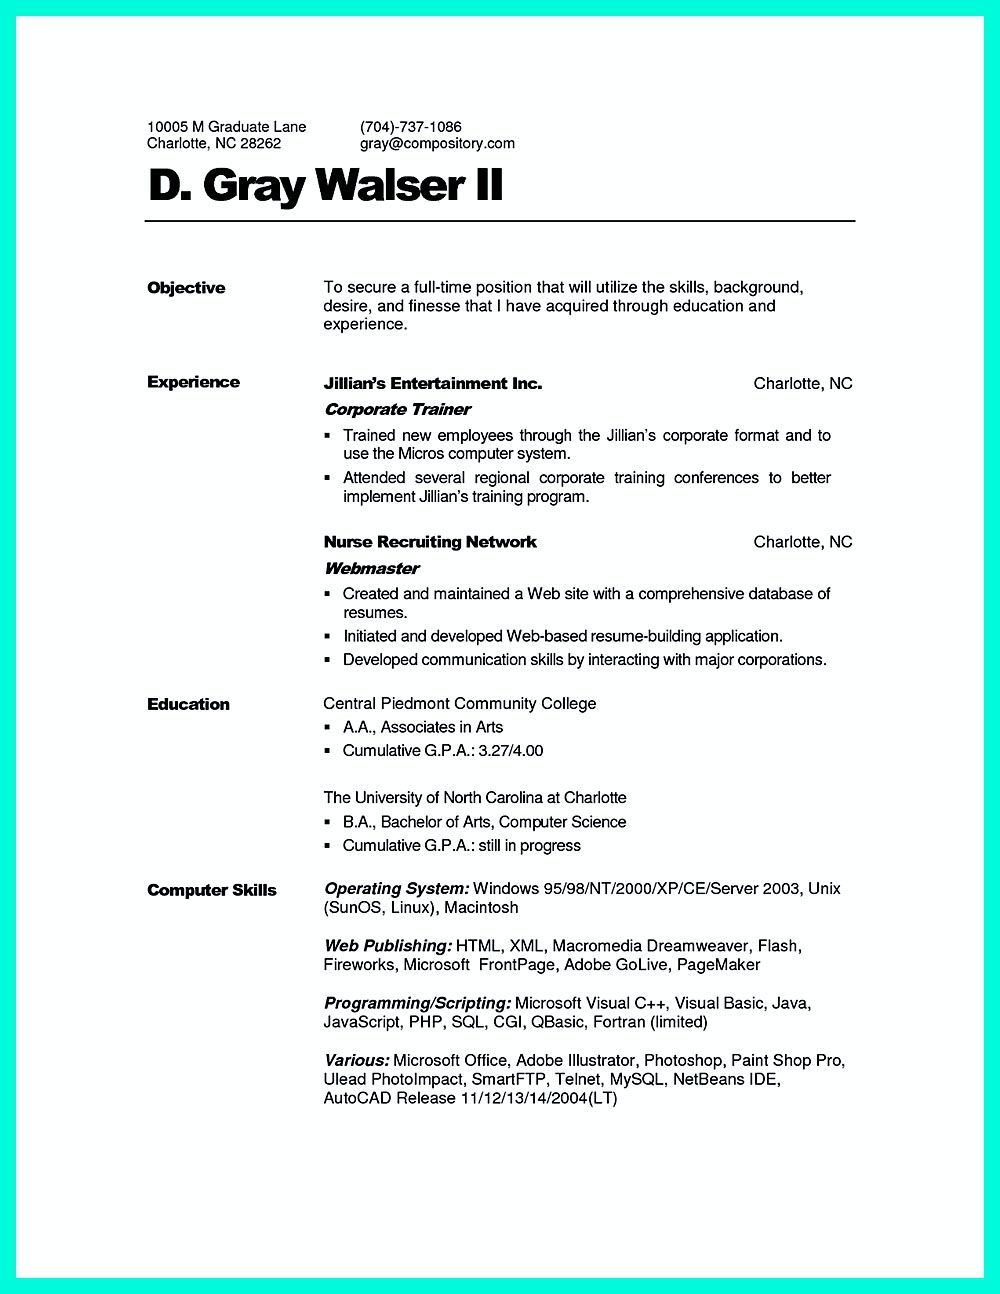 Corporate Trainer Resume Can Be In Chronological Or Reverse Chronologic Style As Both Of Them Can Show The Main Poin Resume Template Resume Job Resume Examples